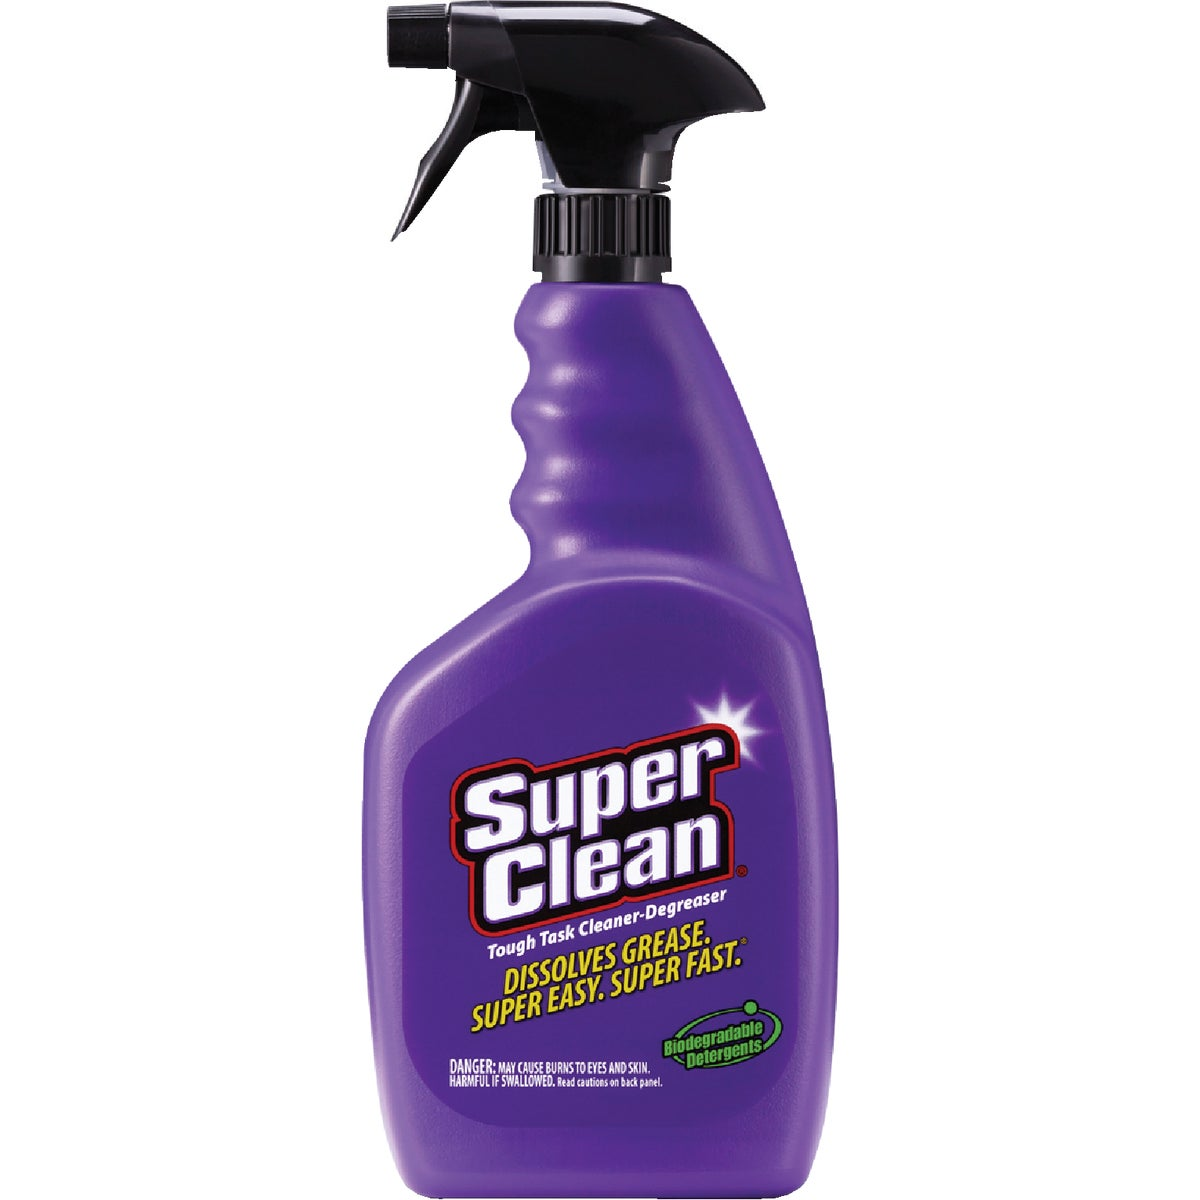 32 SUPERCLEAN DEGREASER - 101780 by Superclean